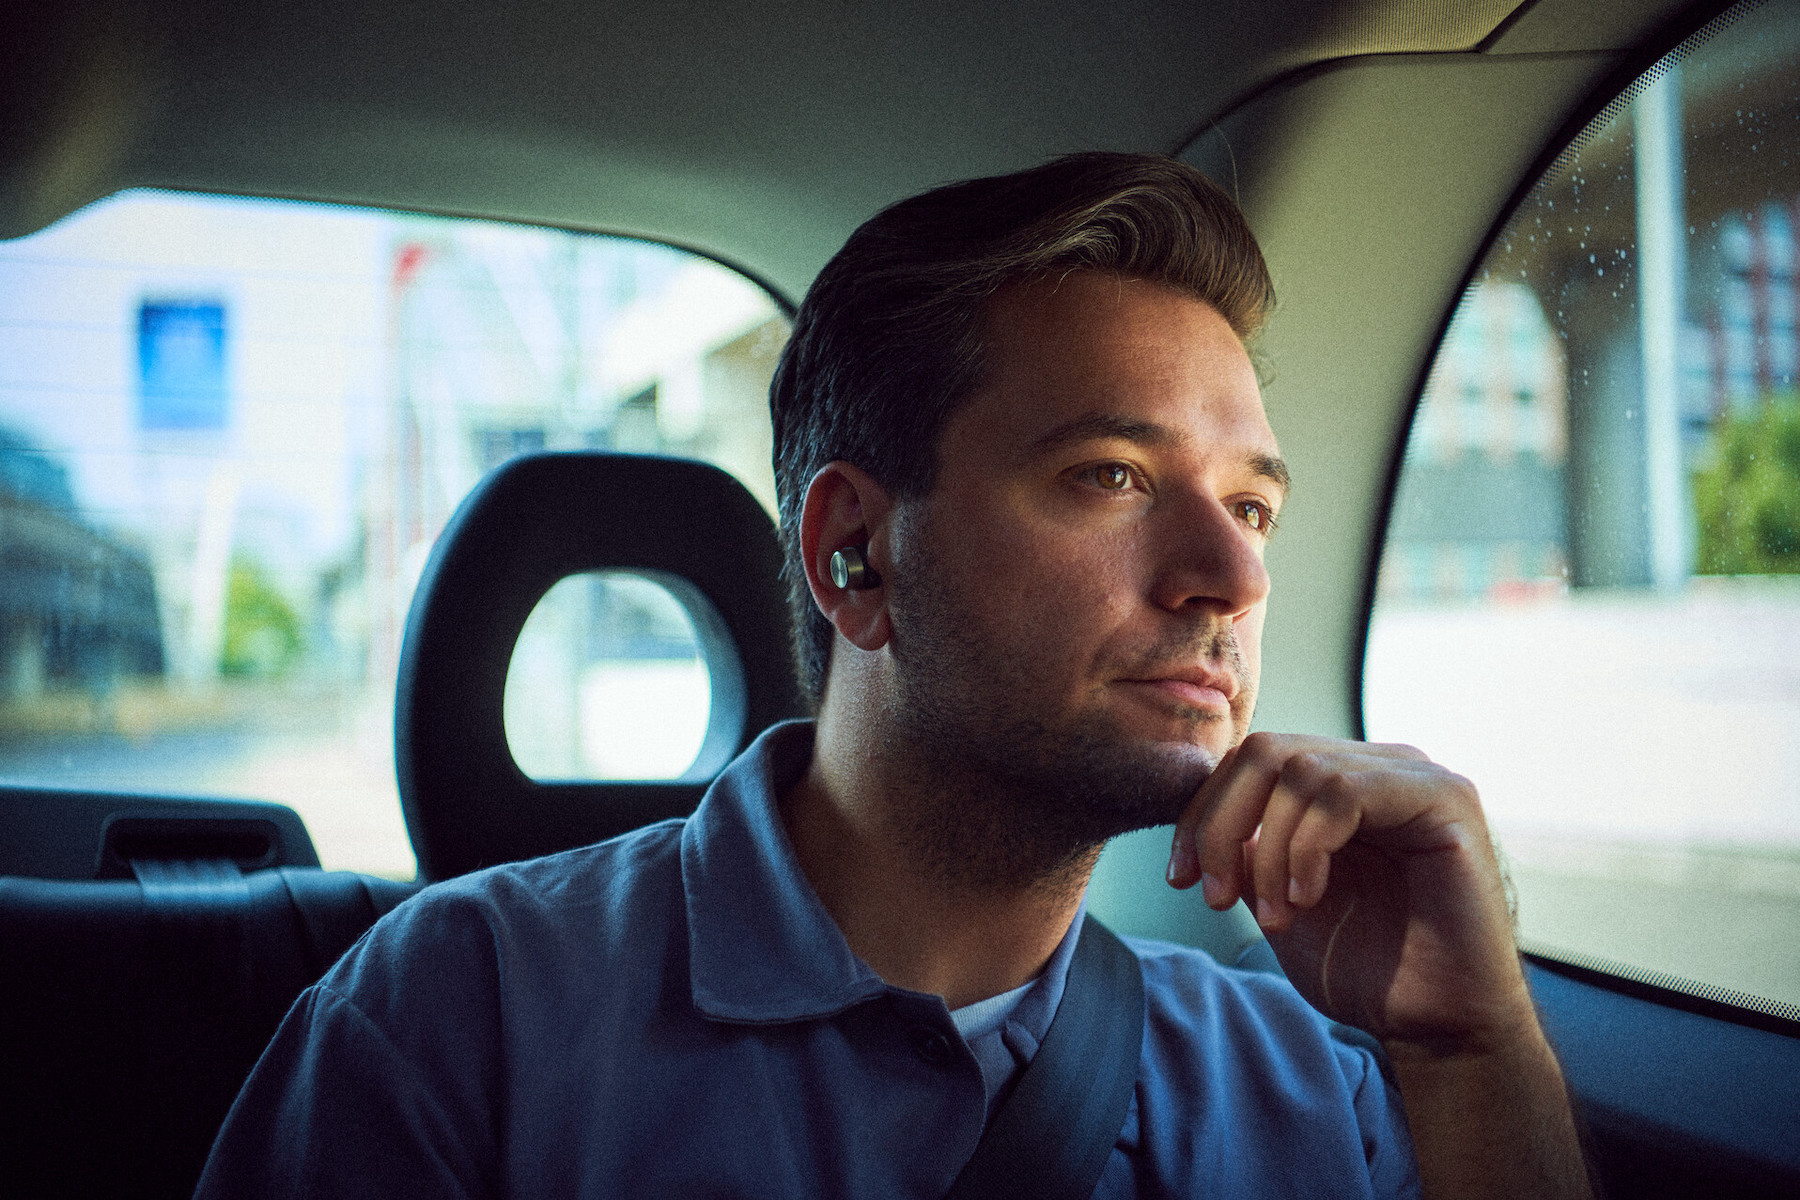 Bowers & Wilkins releases P17 and P15 in-ear wireless headlphones